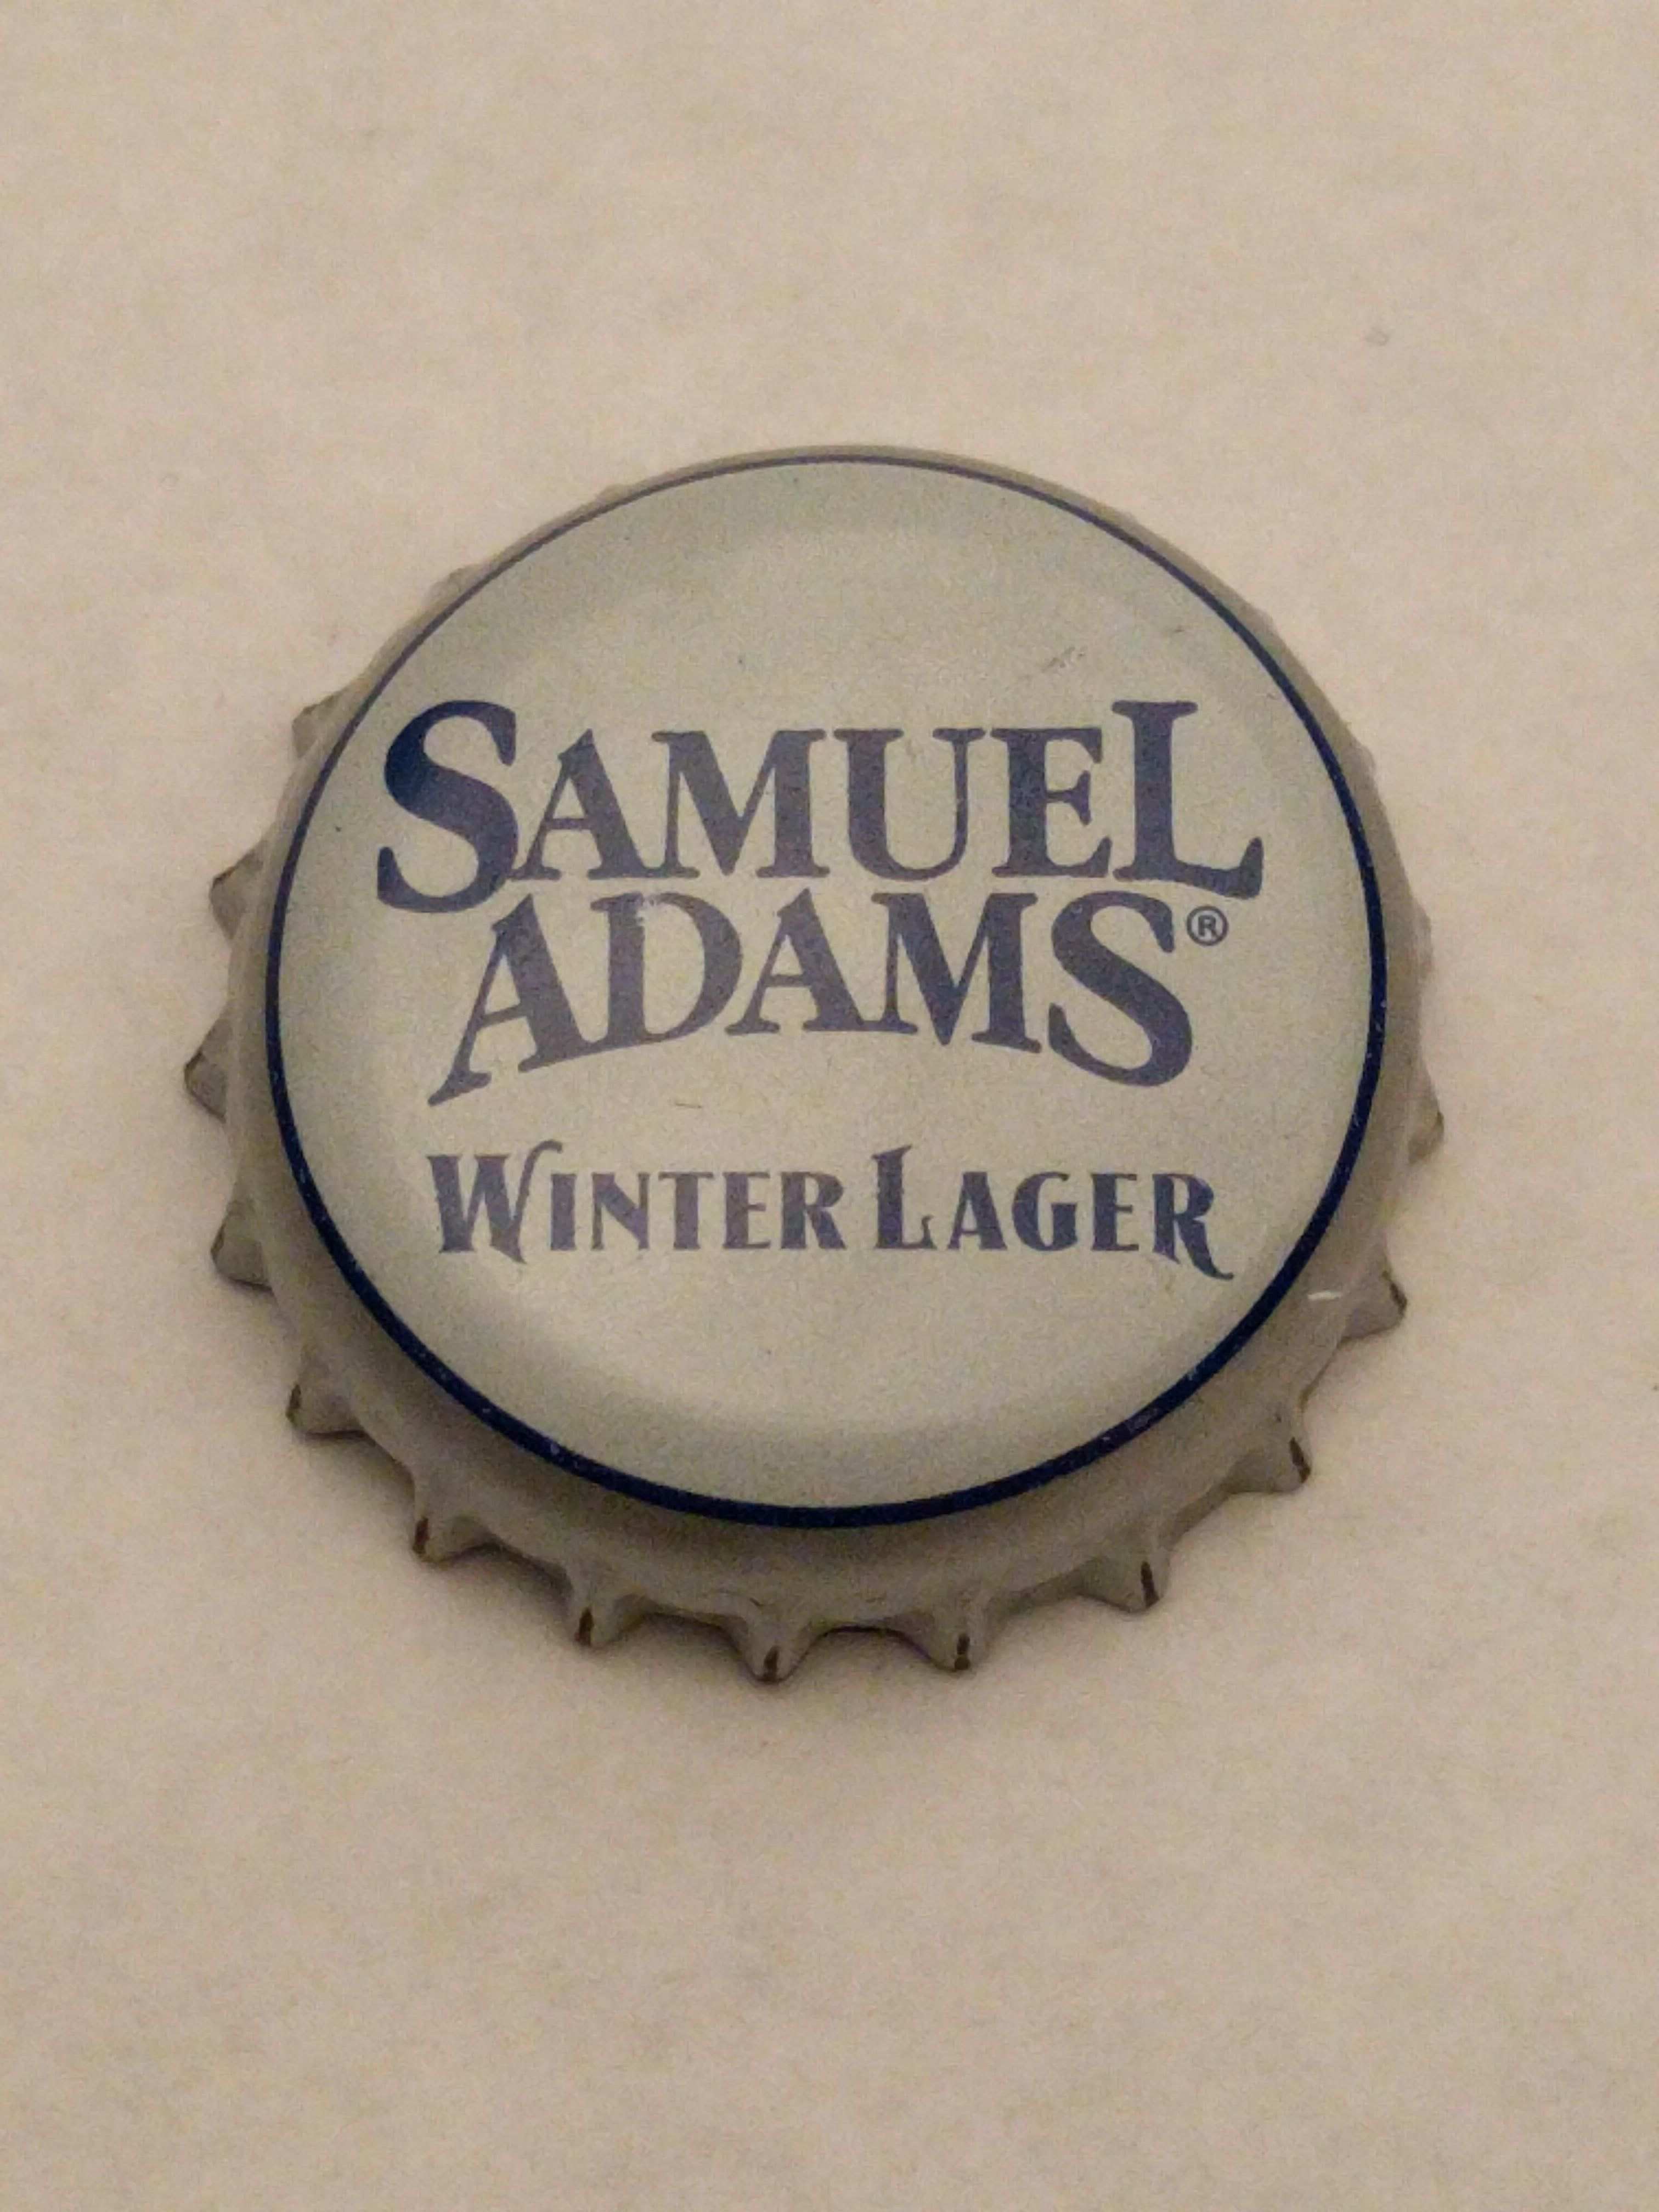 Cap#17 Samuel Adams Winter Lager Boston Beer Company Jamaica Plains, Massachusetts Condition: Perfect, small dents